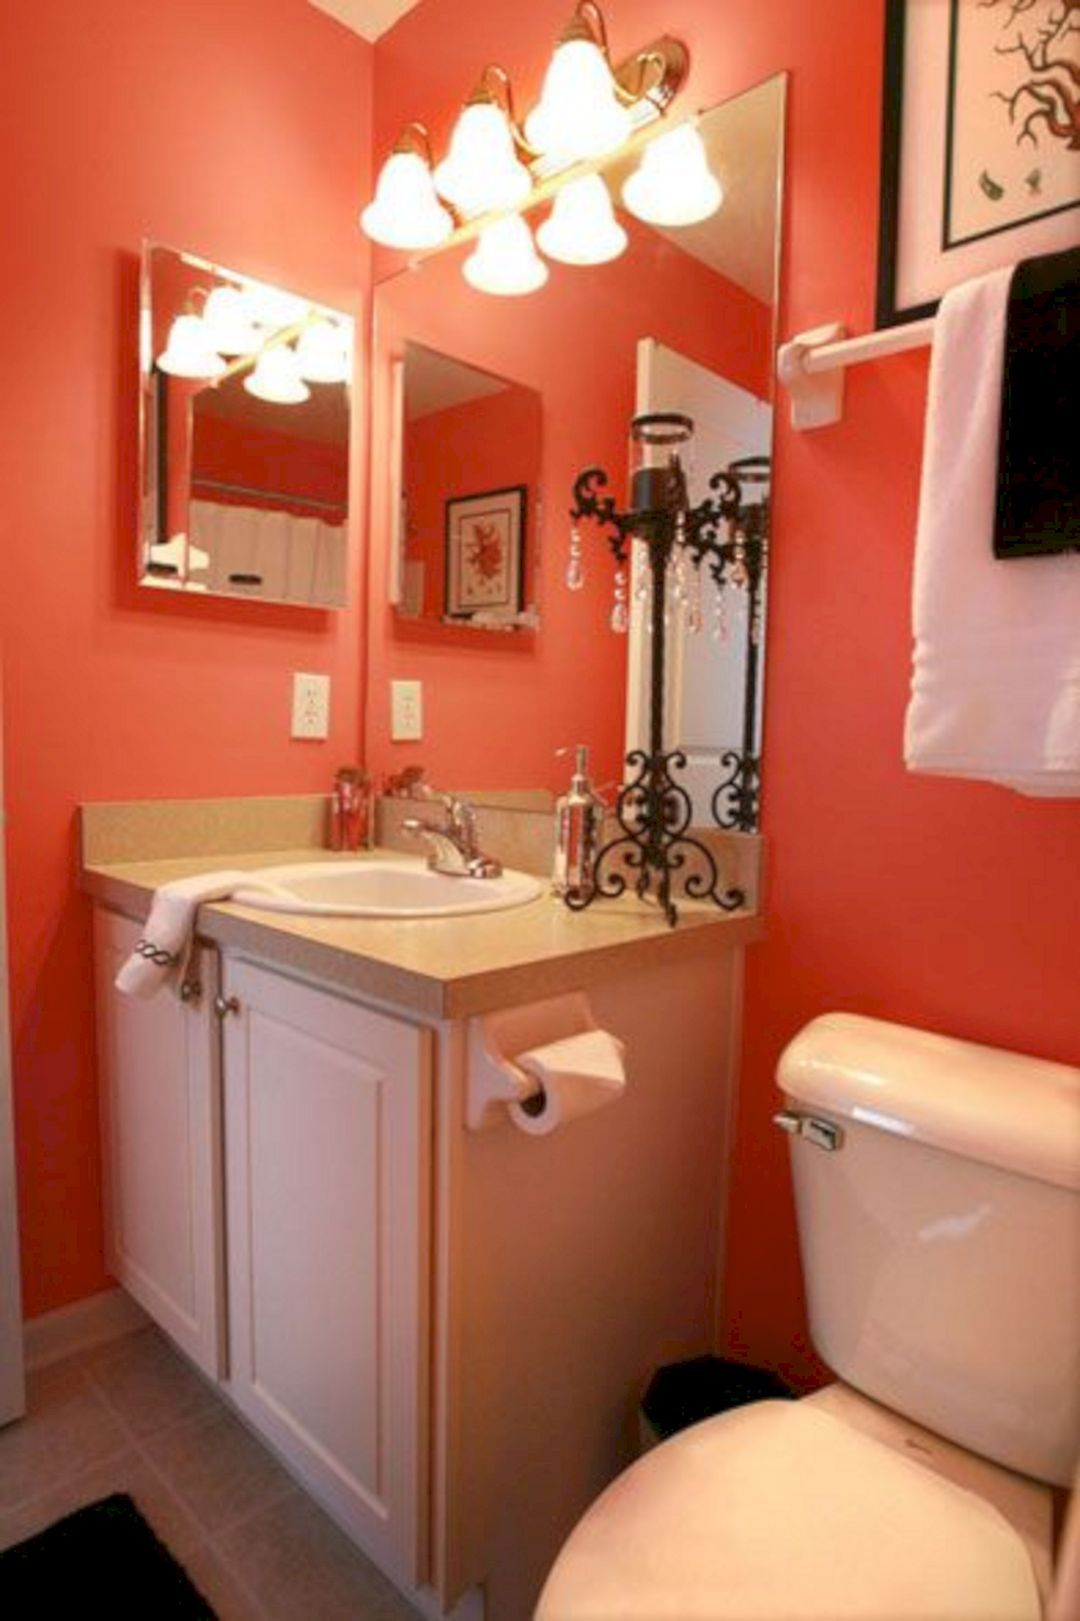 20 Gorgeous Coral Bathroom Decorathing For Amazing Bathroom Inspiration Freshouz Com Coral Bathroom Coral Bathroom Decor Bathroom Decor Colors